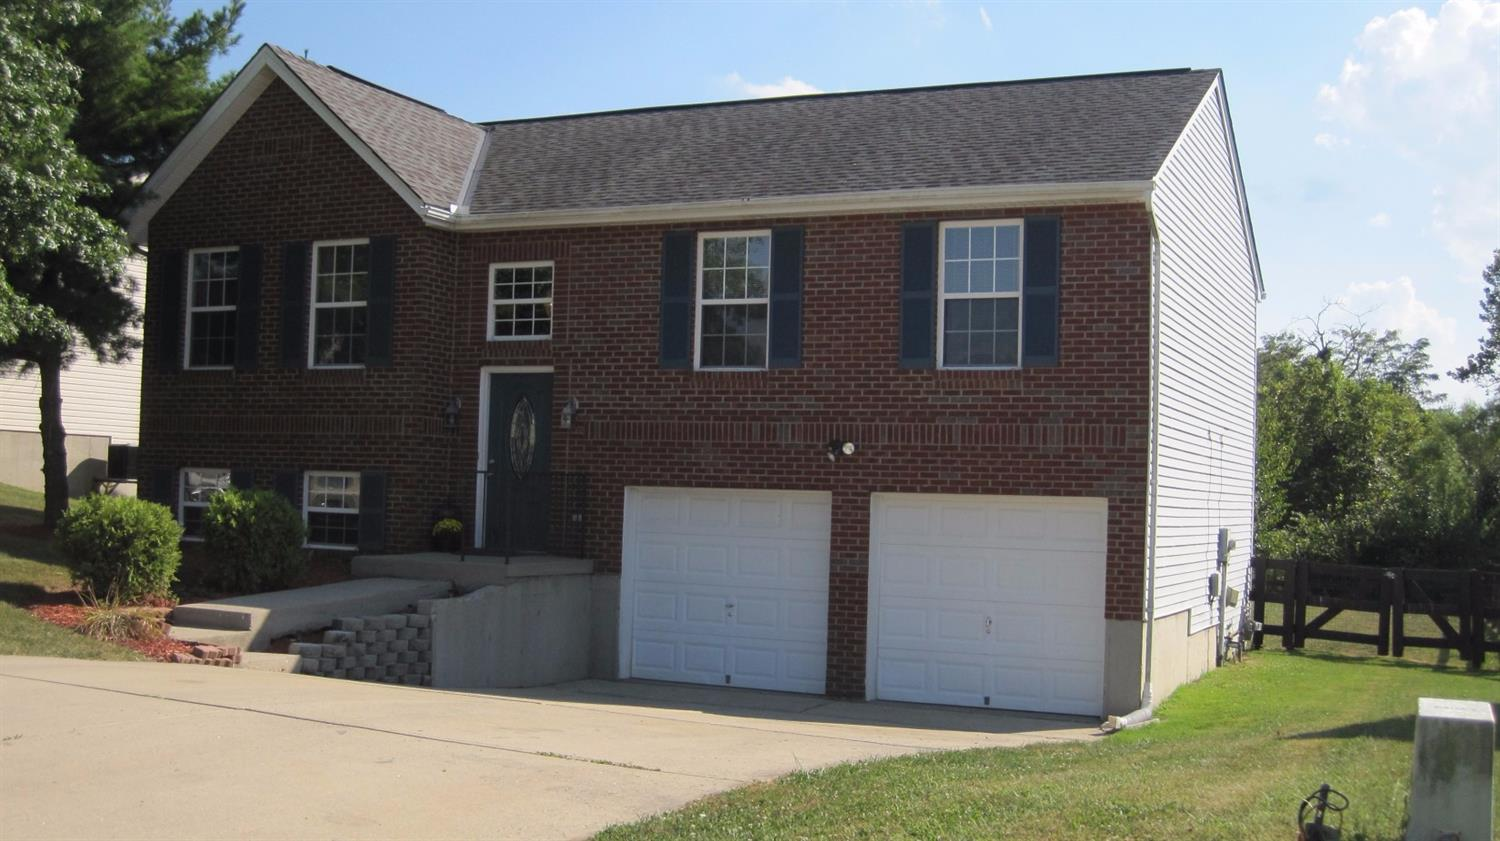 Photo 1 for 12038 Rachel Ann Dr Walton, KY 41094